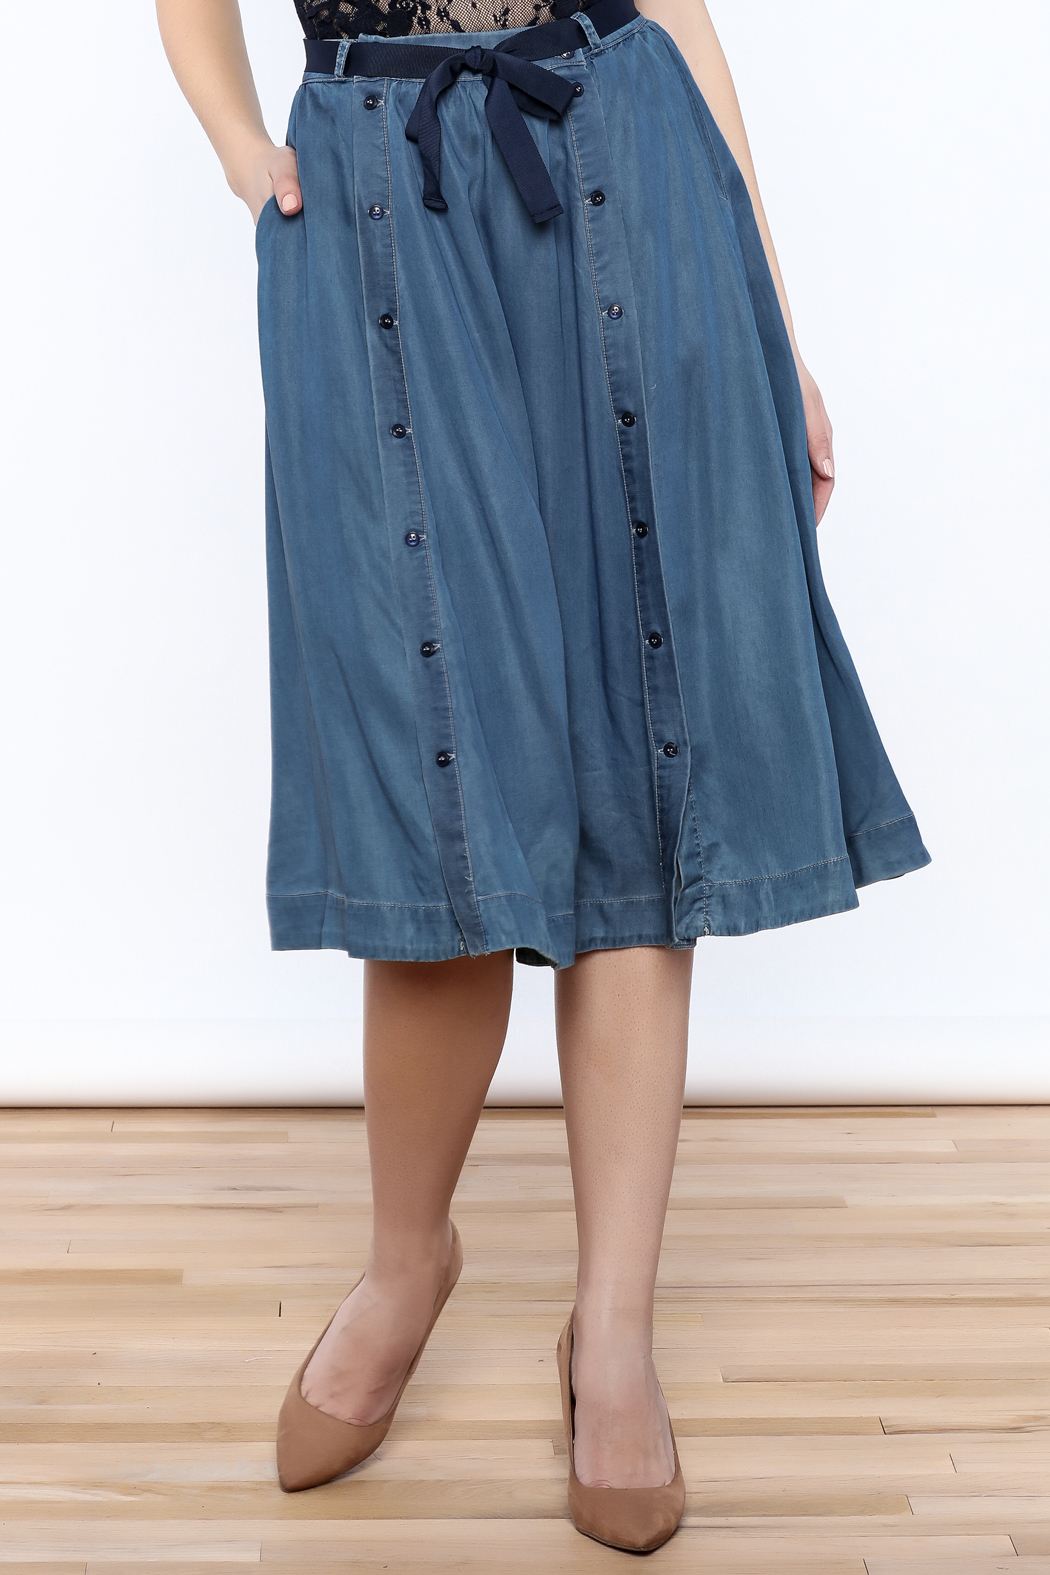 frnch denim flare skirt from new york city by jupe